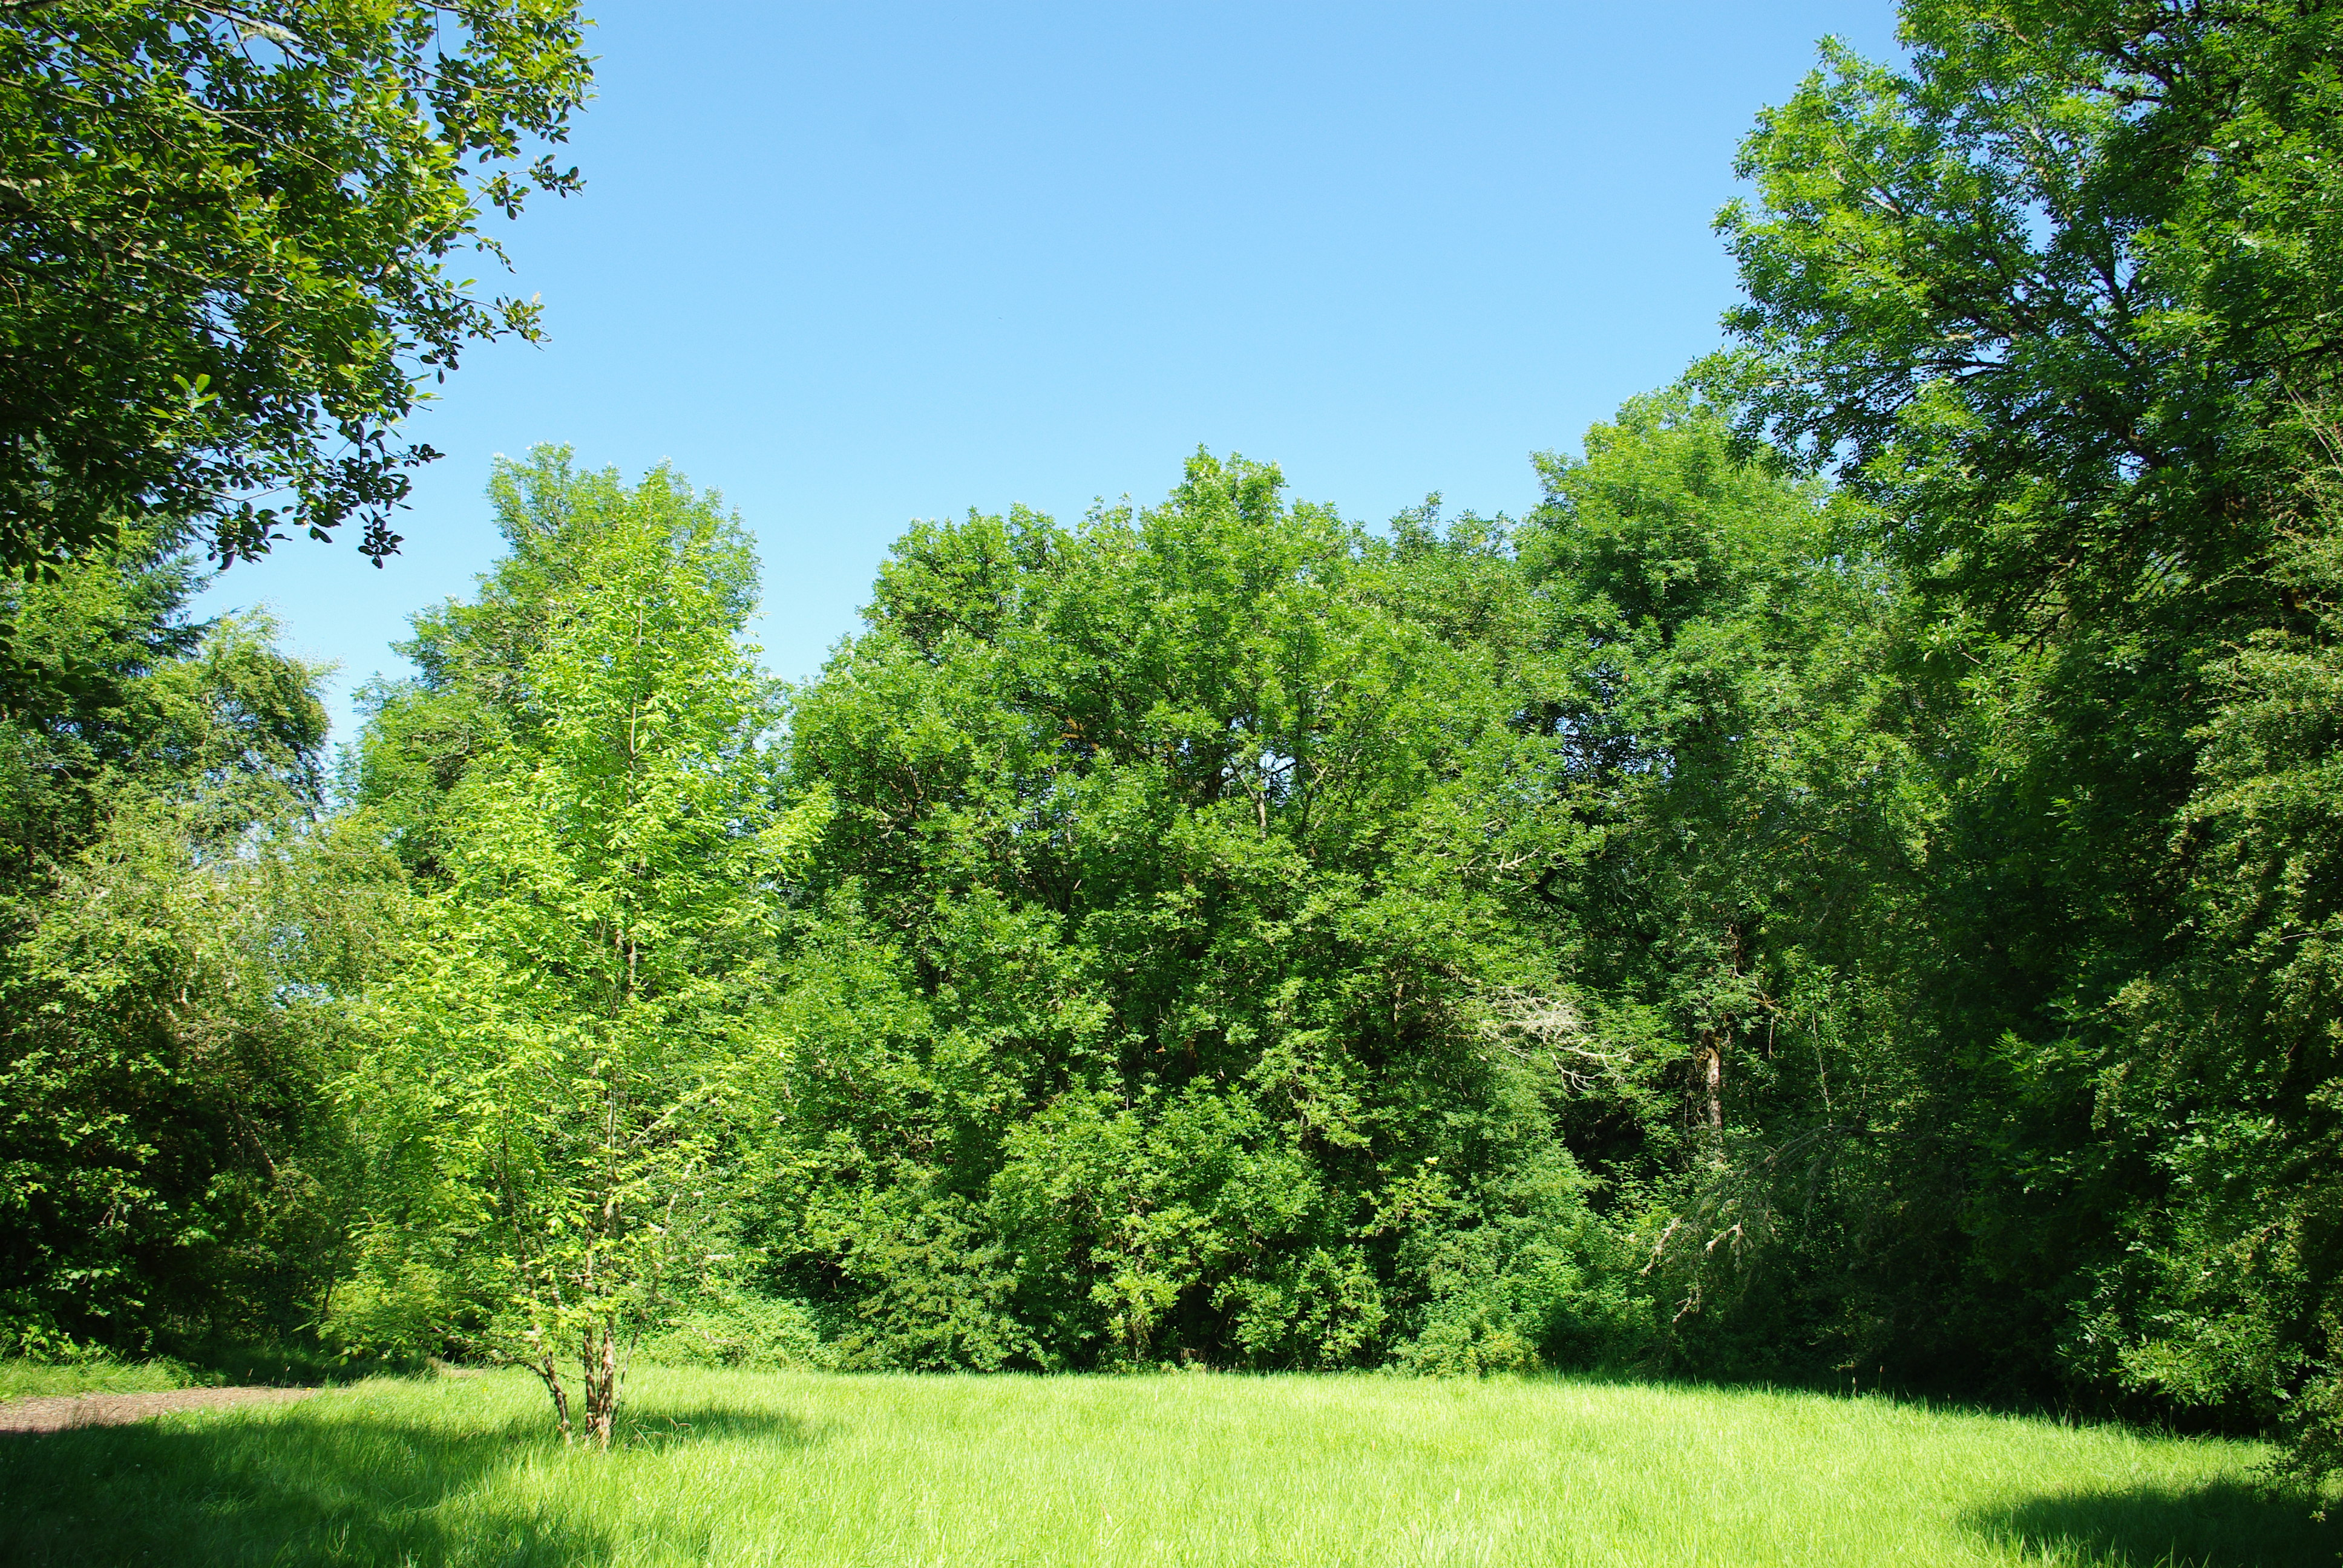 File:Meadow and trees at Noble Woods Park - Hillsboro, Oregon.JPG ...